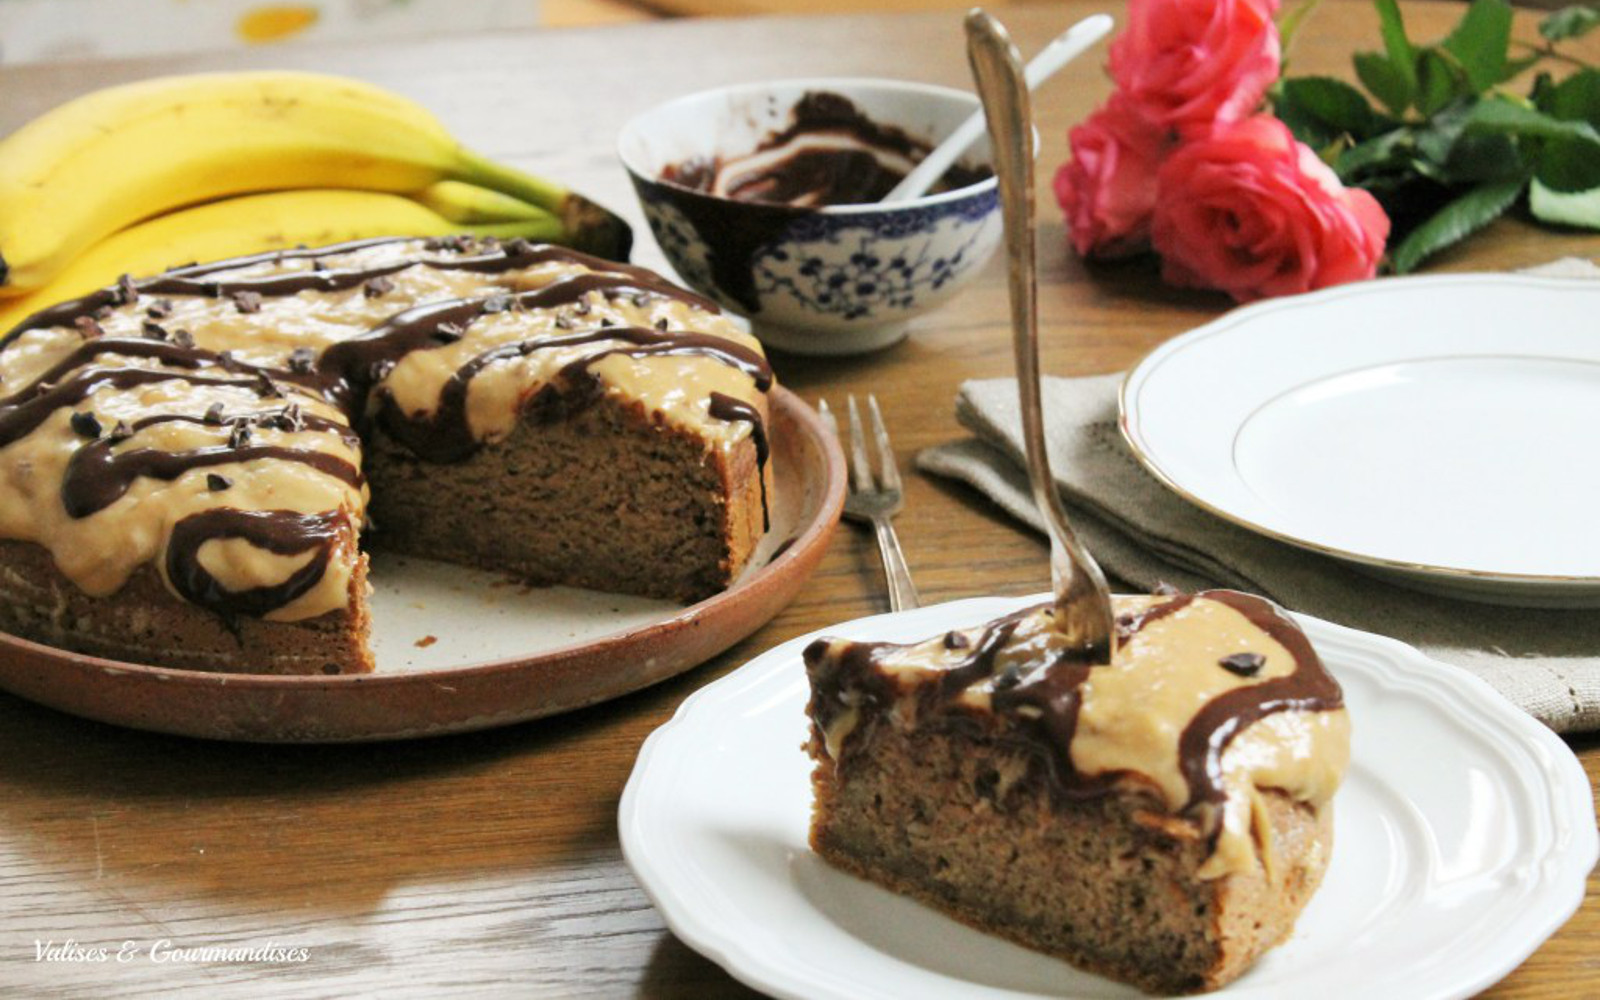 Healthy Banana Cake  Healthy Banana Cake With Peanut Butter Frosting and Maca